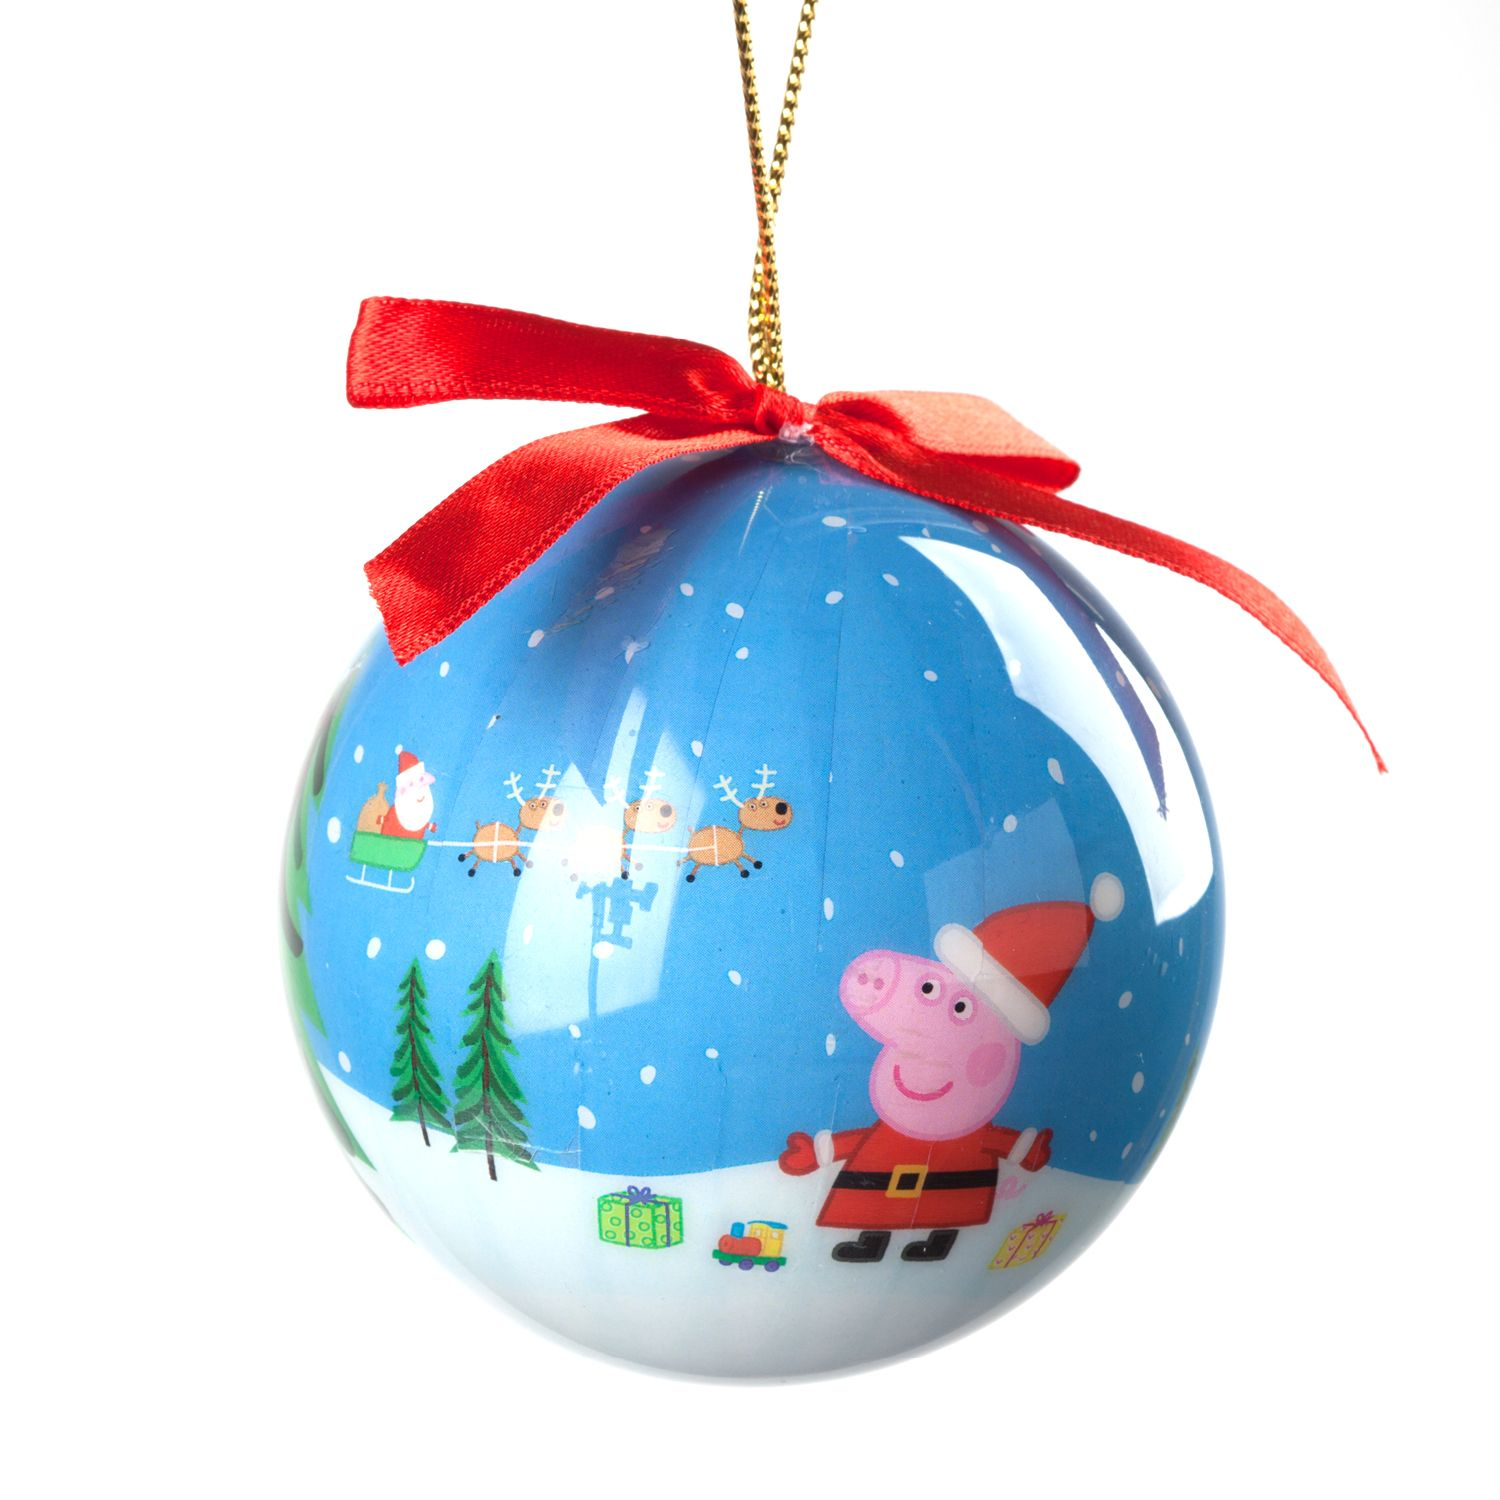 This Sweet Ornament Features Peppa Dressed As Santa Claus In